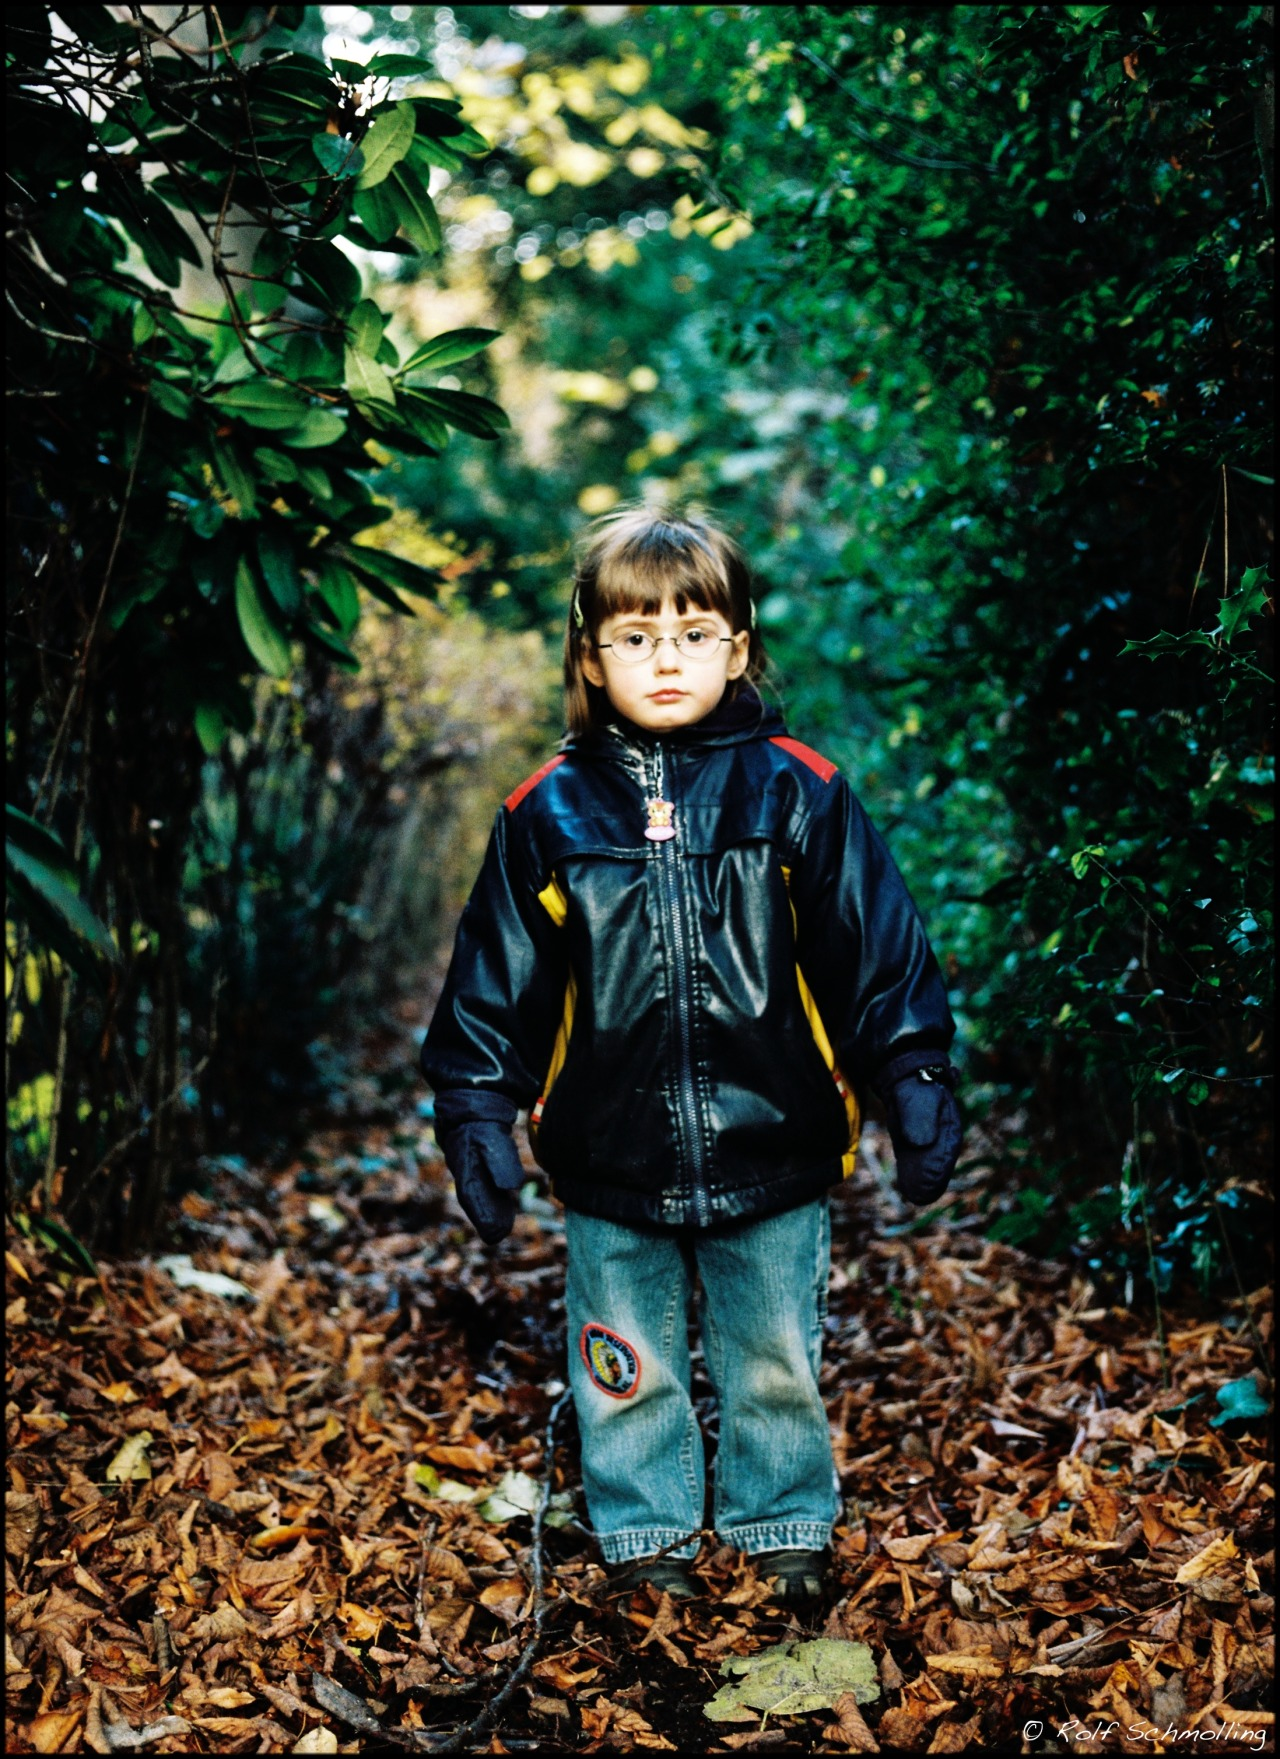 Standing Still. November 2012 on Flickr. Zenza Bronica ETRSi (645) 2.8/75 MC on new Kodak Portra 400 @200, developed and scanned by Open-Eyes, Hamburg